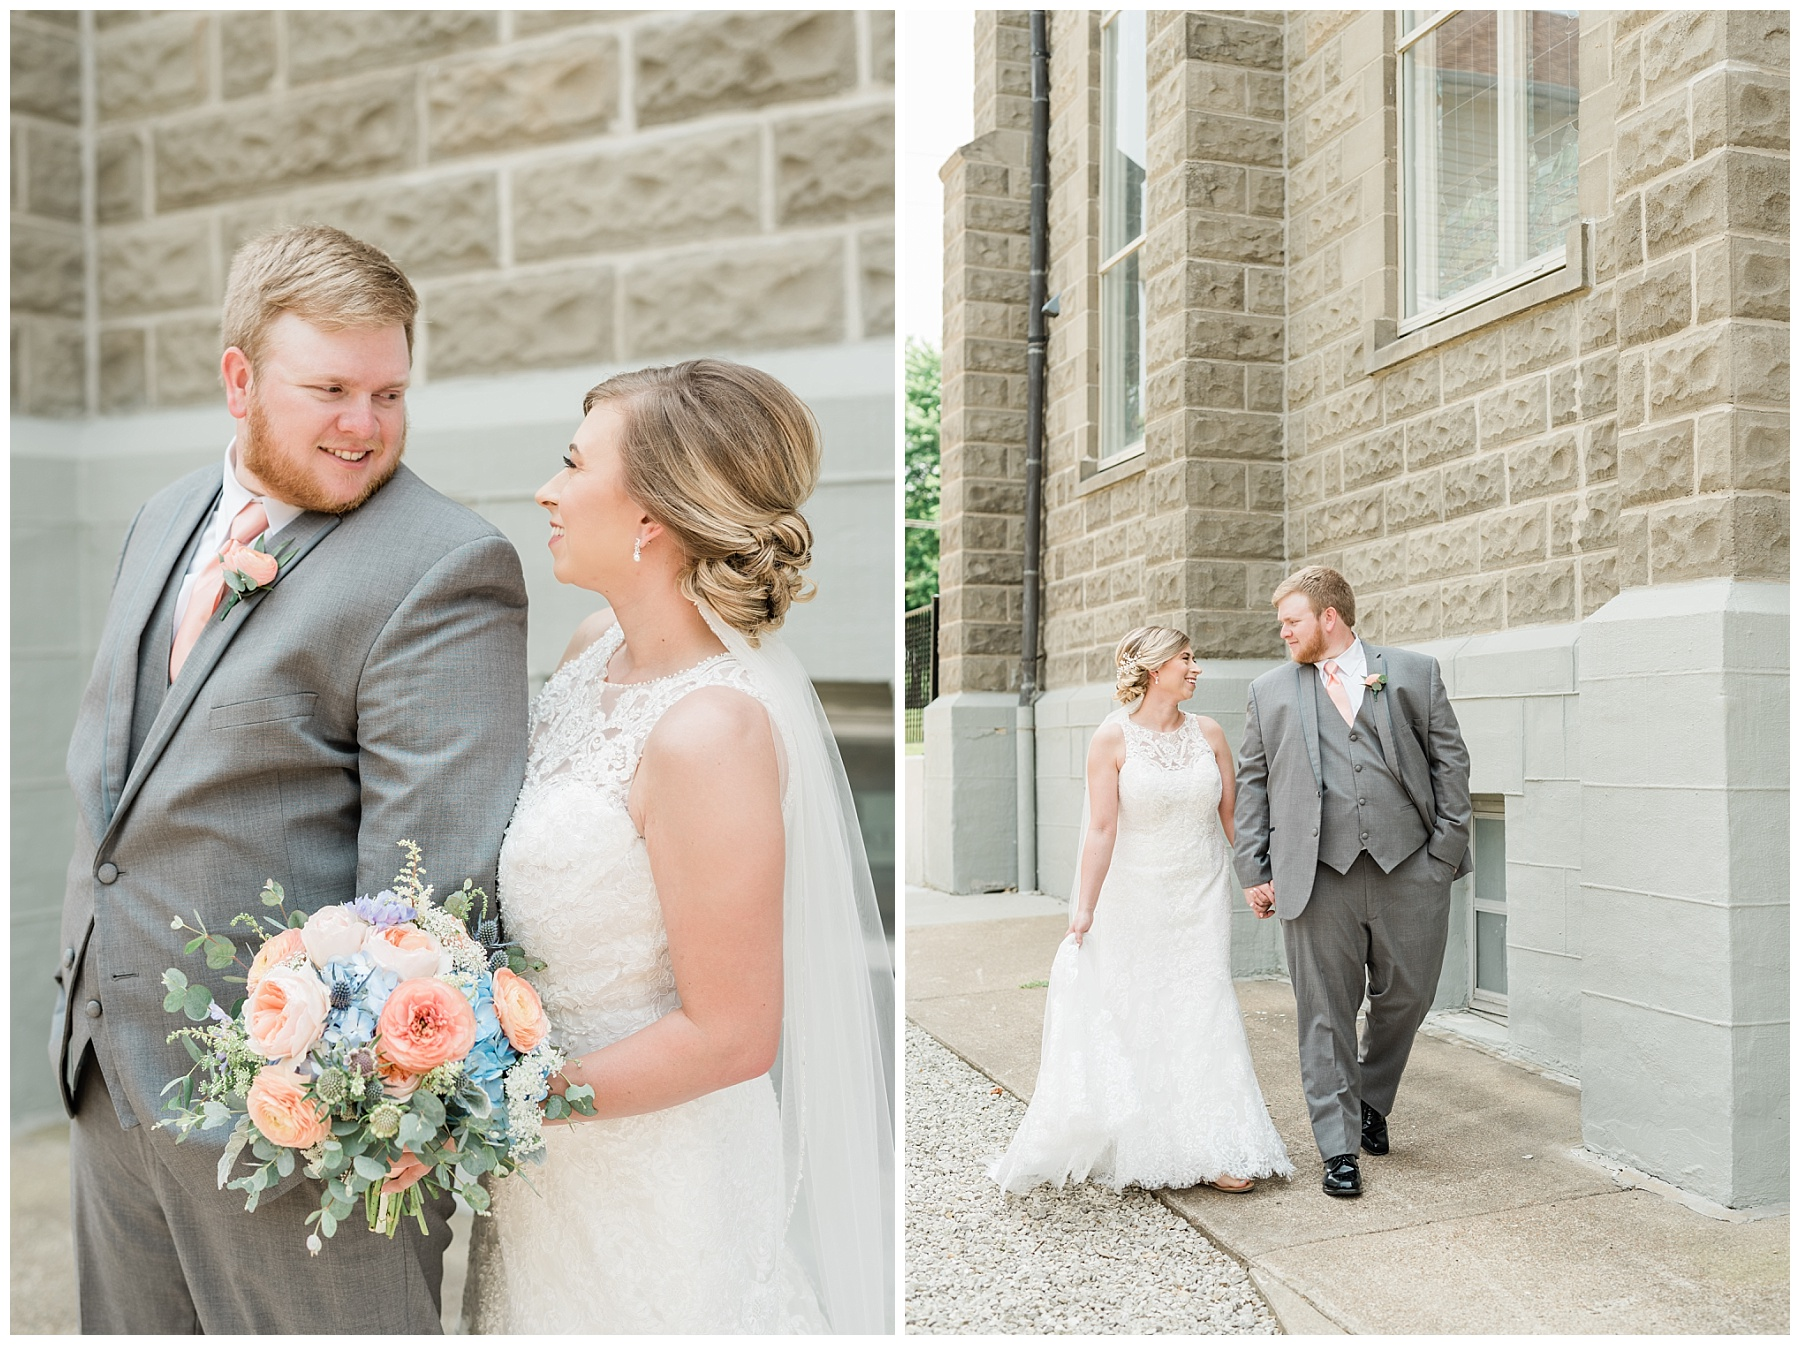 Peach and Dusty Blue Spring Wedding in Rolling Hills of Mid Missouri by Kelsi Kliethermes Photography Best Missouri and Maui Wedding Photographer_0036.jpg